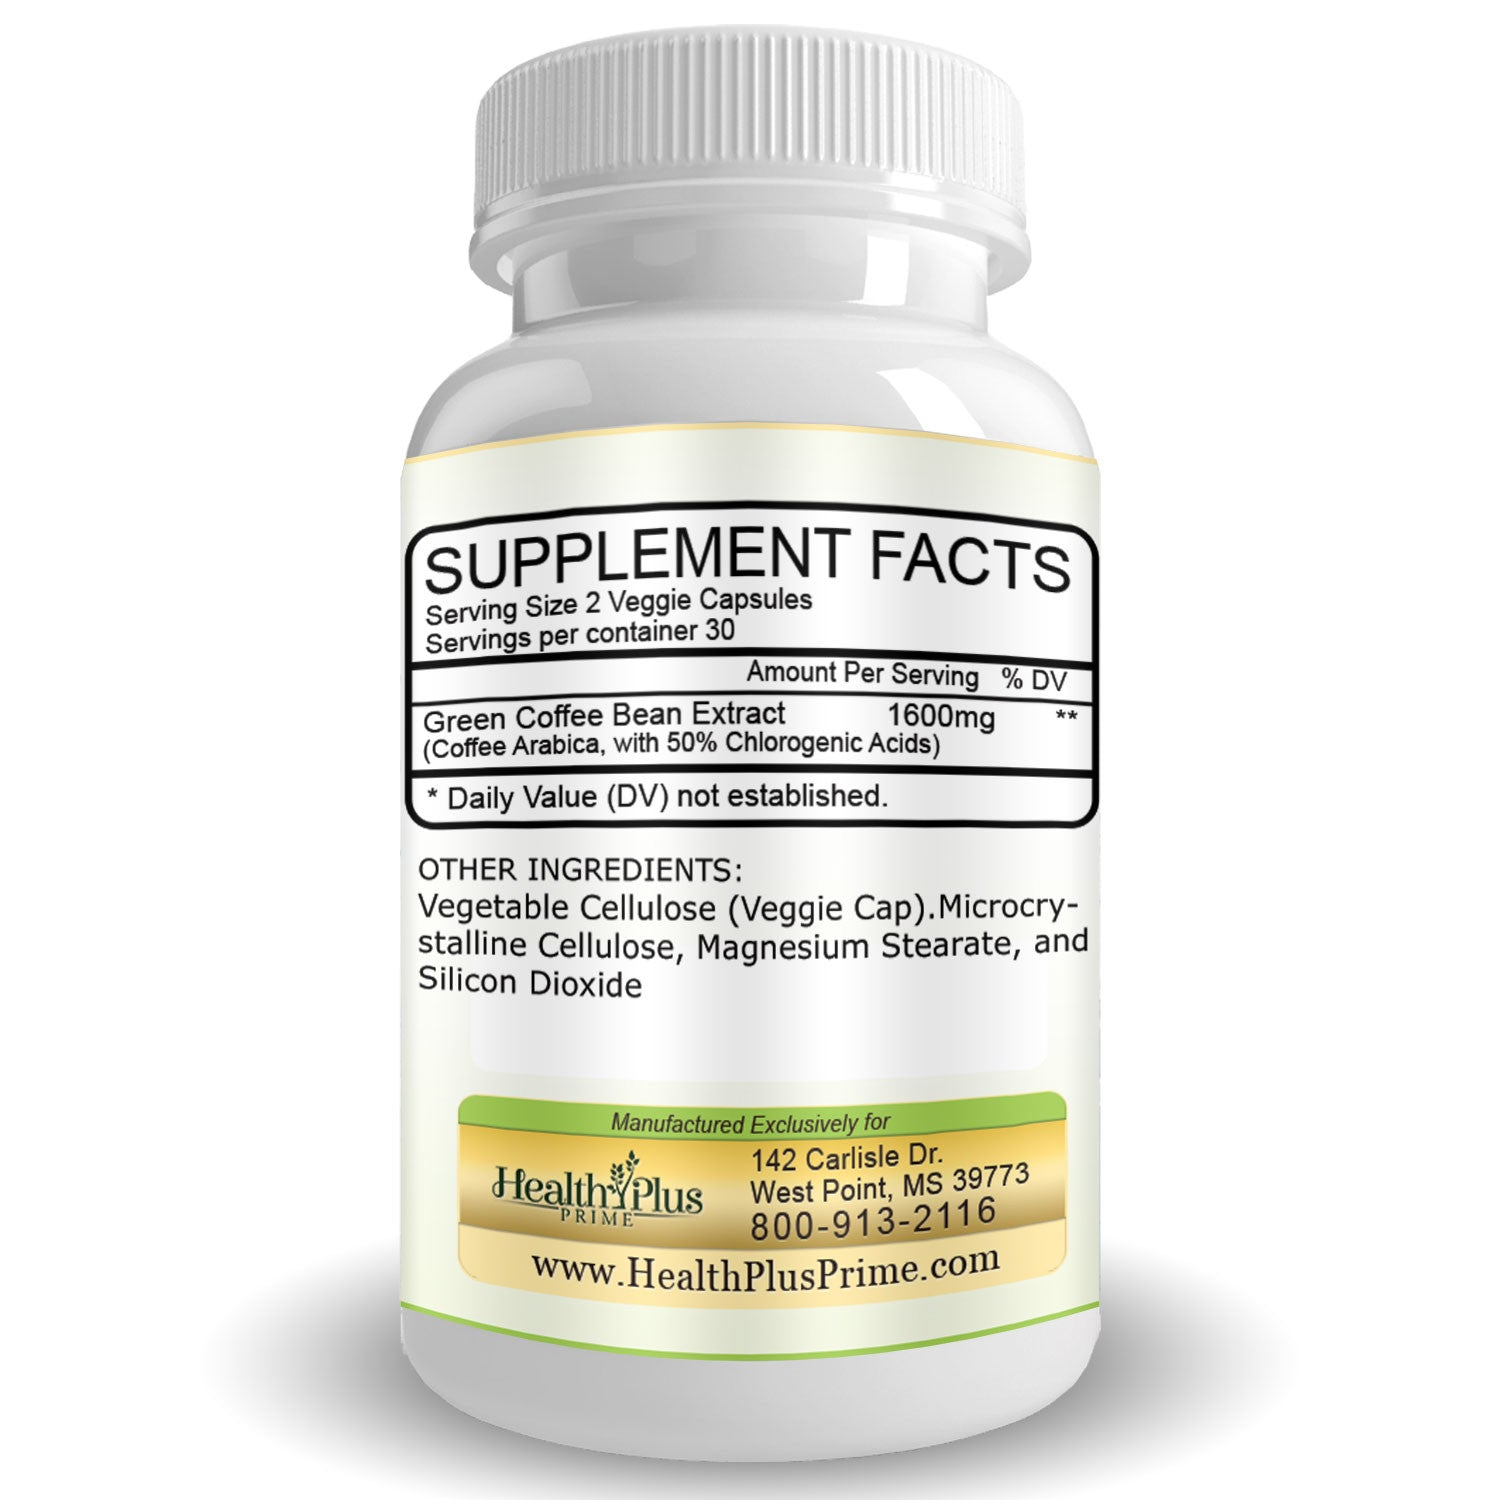 Green Coffee Bean Extract Weight Loss Supplement Health Plus Prime Capsule Pure Arabica Organic 60 Caps